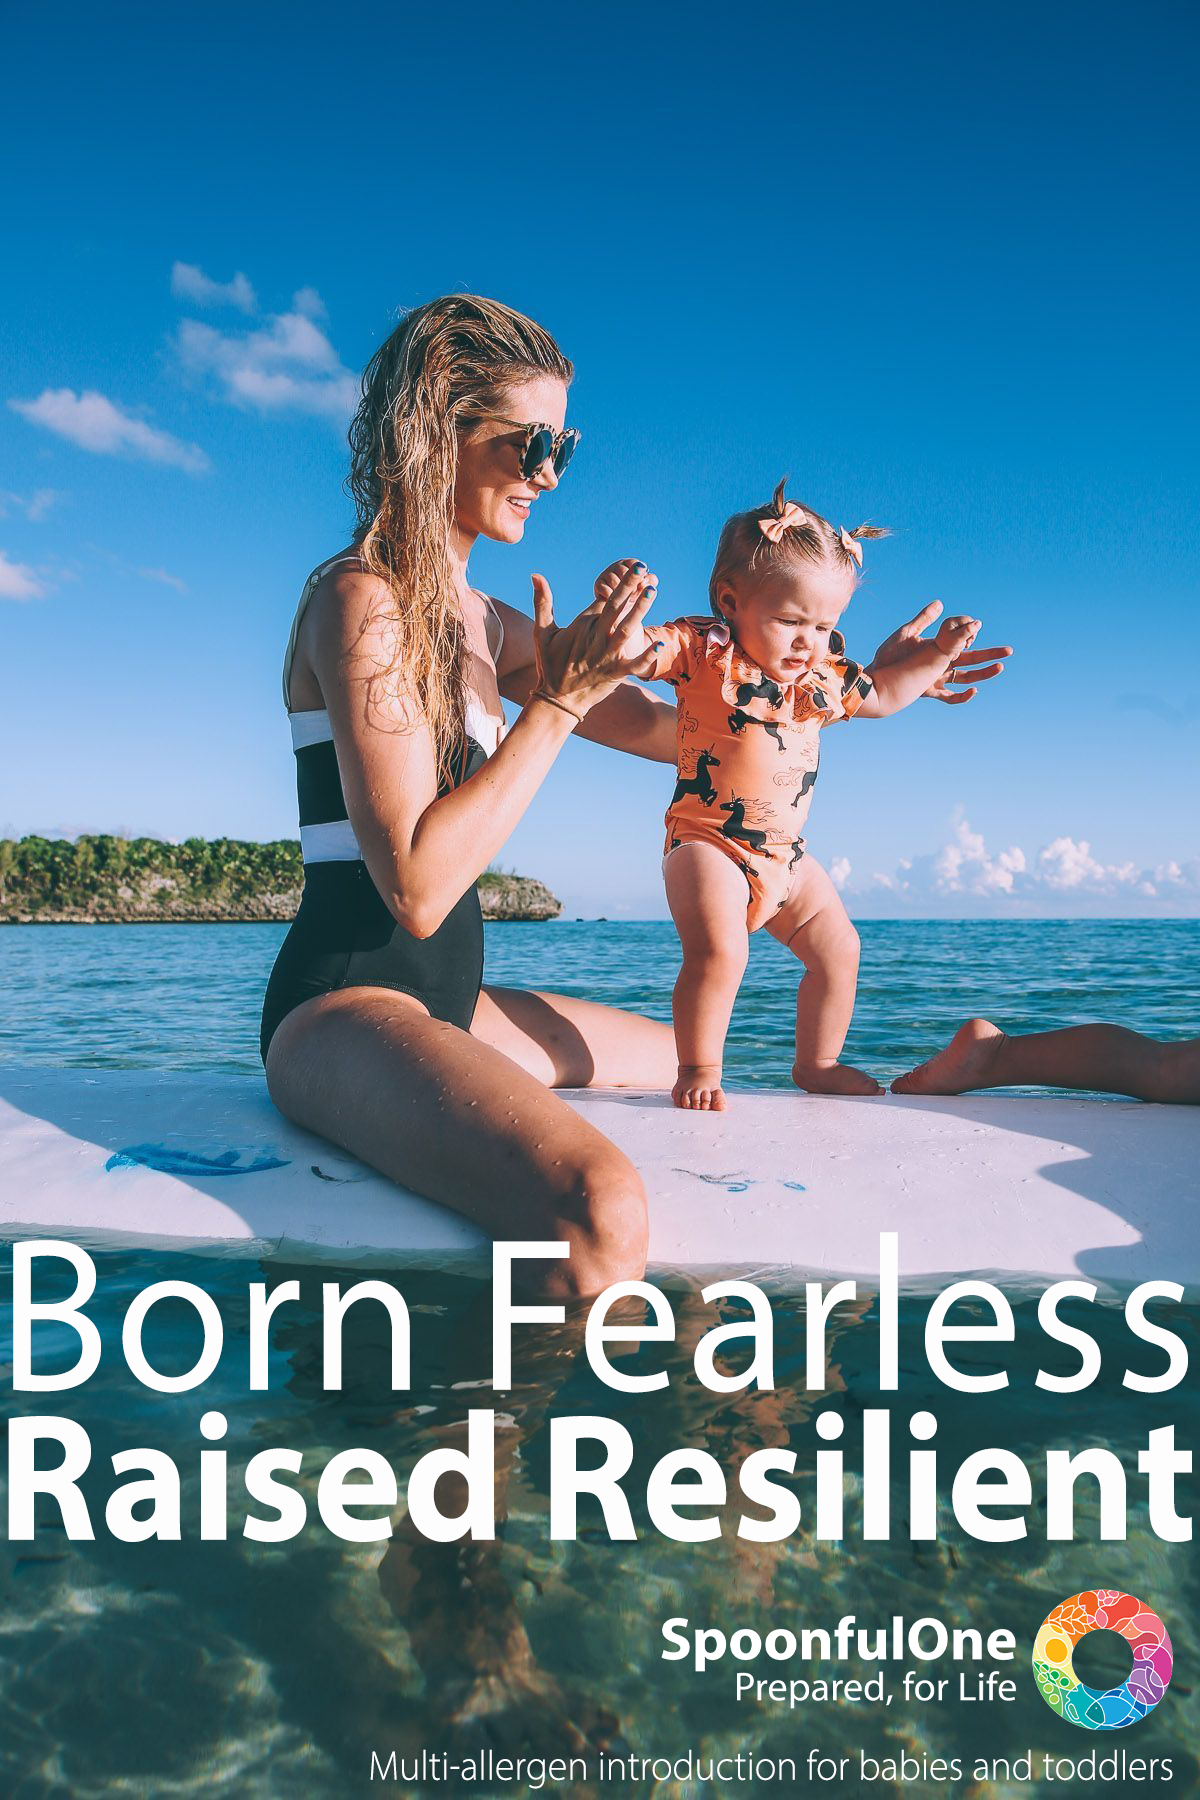 Young mohter sitting on a surfboard in calm blue waters helping her infant child stand on the board. Copy reads: Born Fearless, Raised Resilient. Spoonful one, Prepared for life.